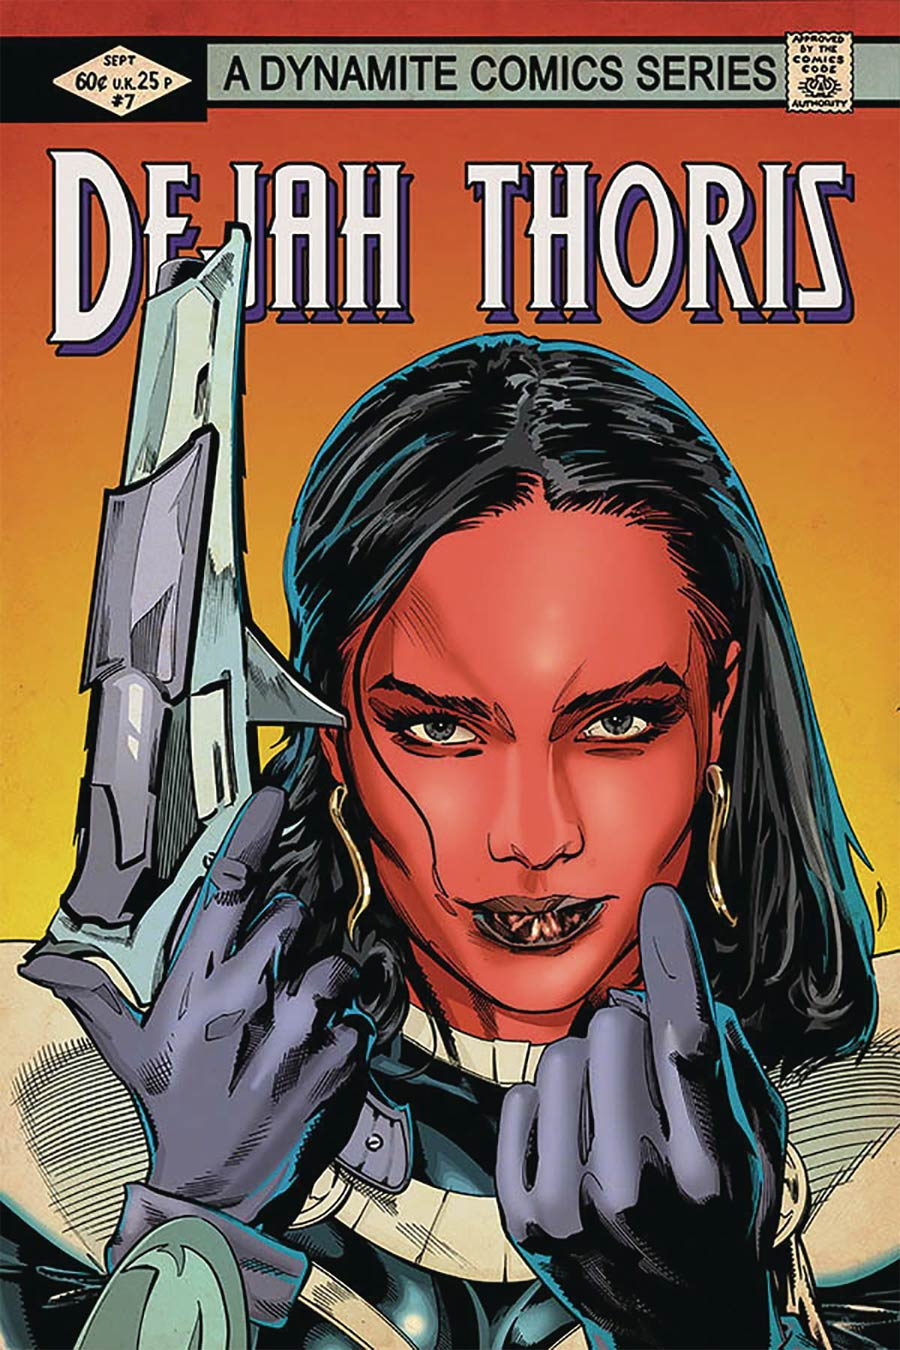 Dejah Thoris Vol 3 #7 Cover D Variant Stephen Mooney Frank Miller Homage Cover